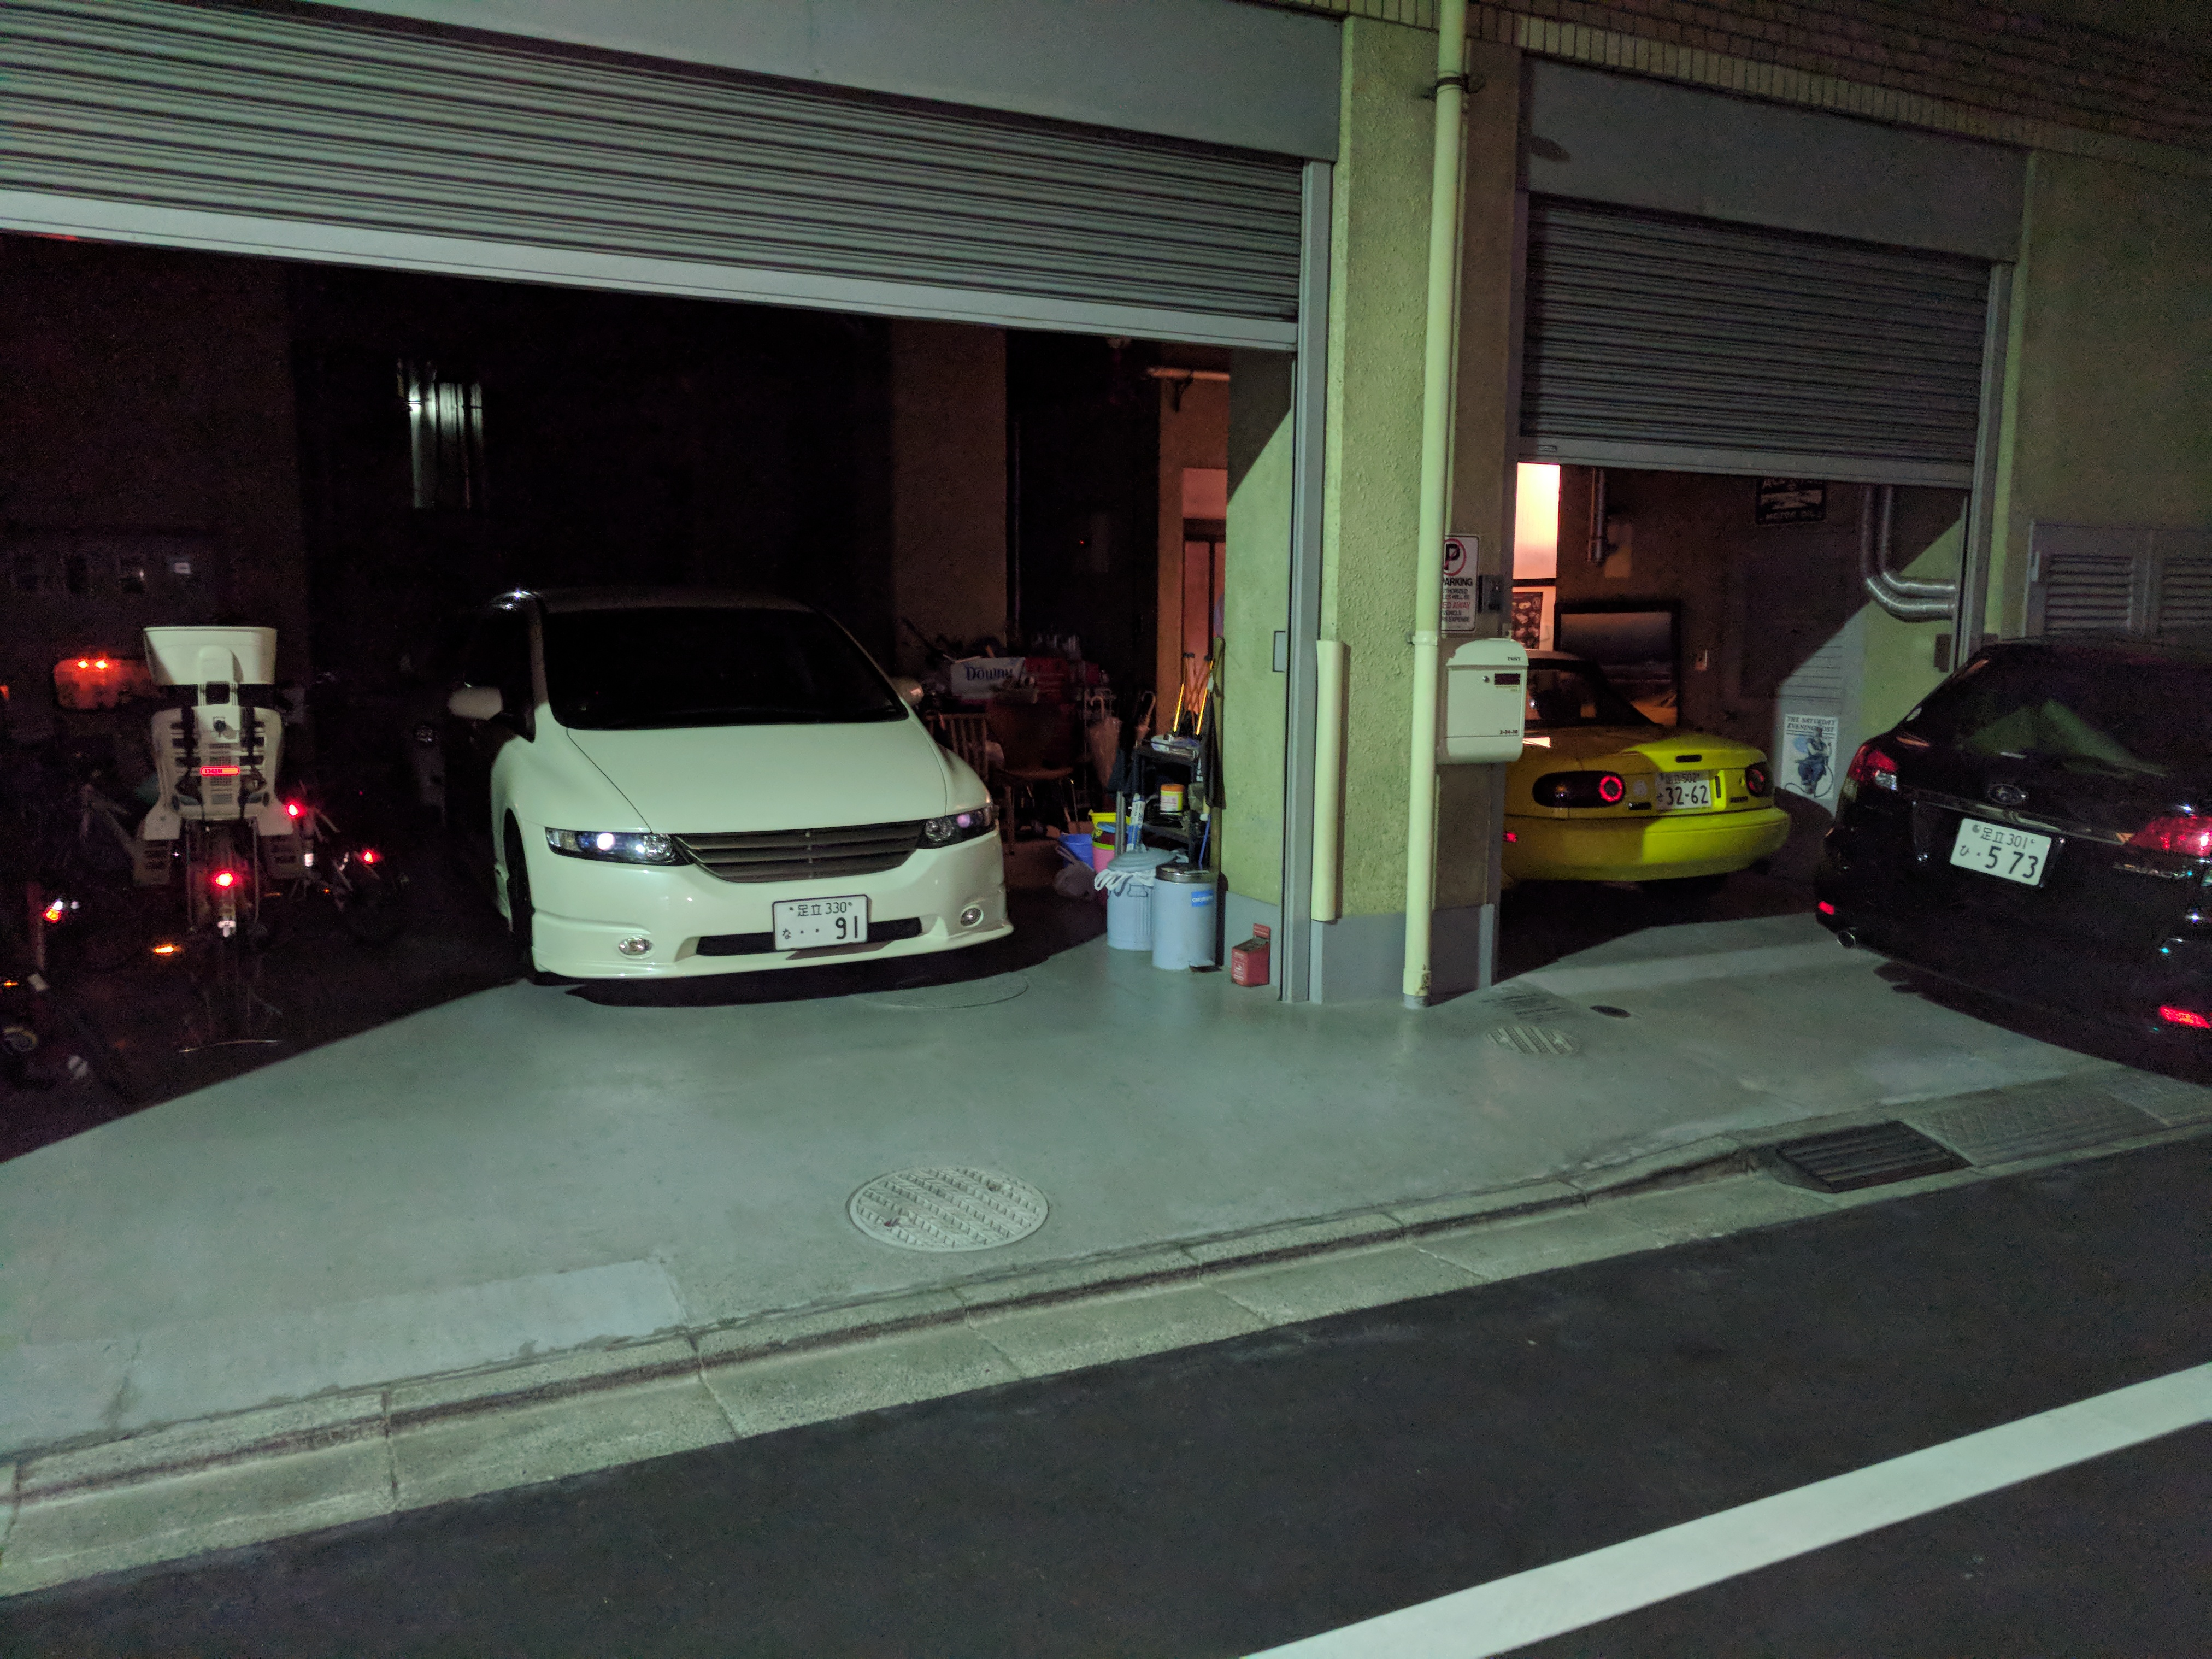 Moments after leaving my apartment for the first time to explore the area, I spot a  lowered minivan and a yellow NA Roadster in the same garage.